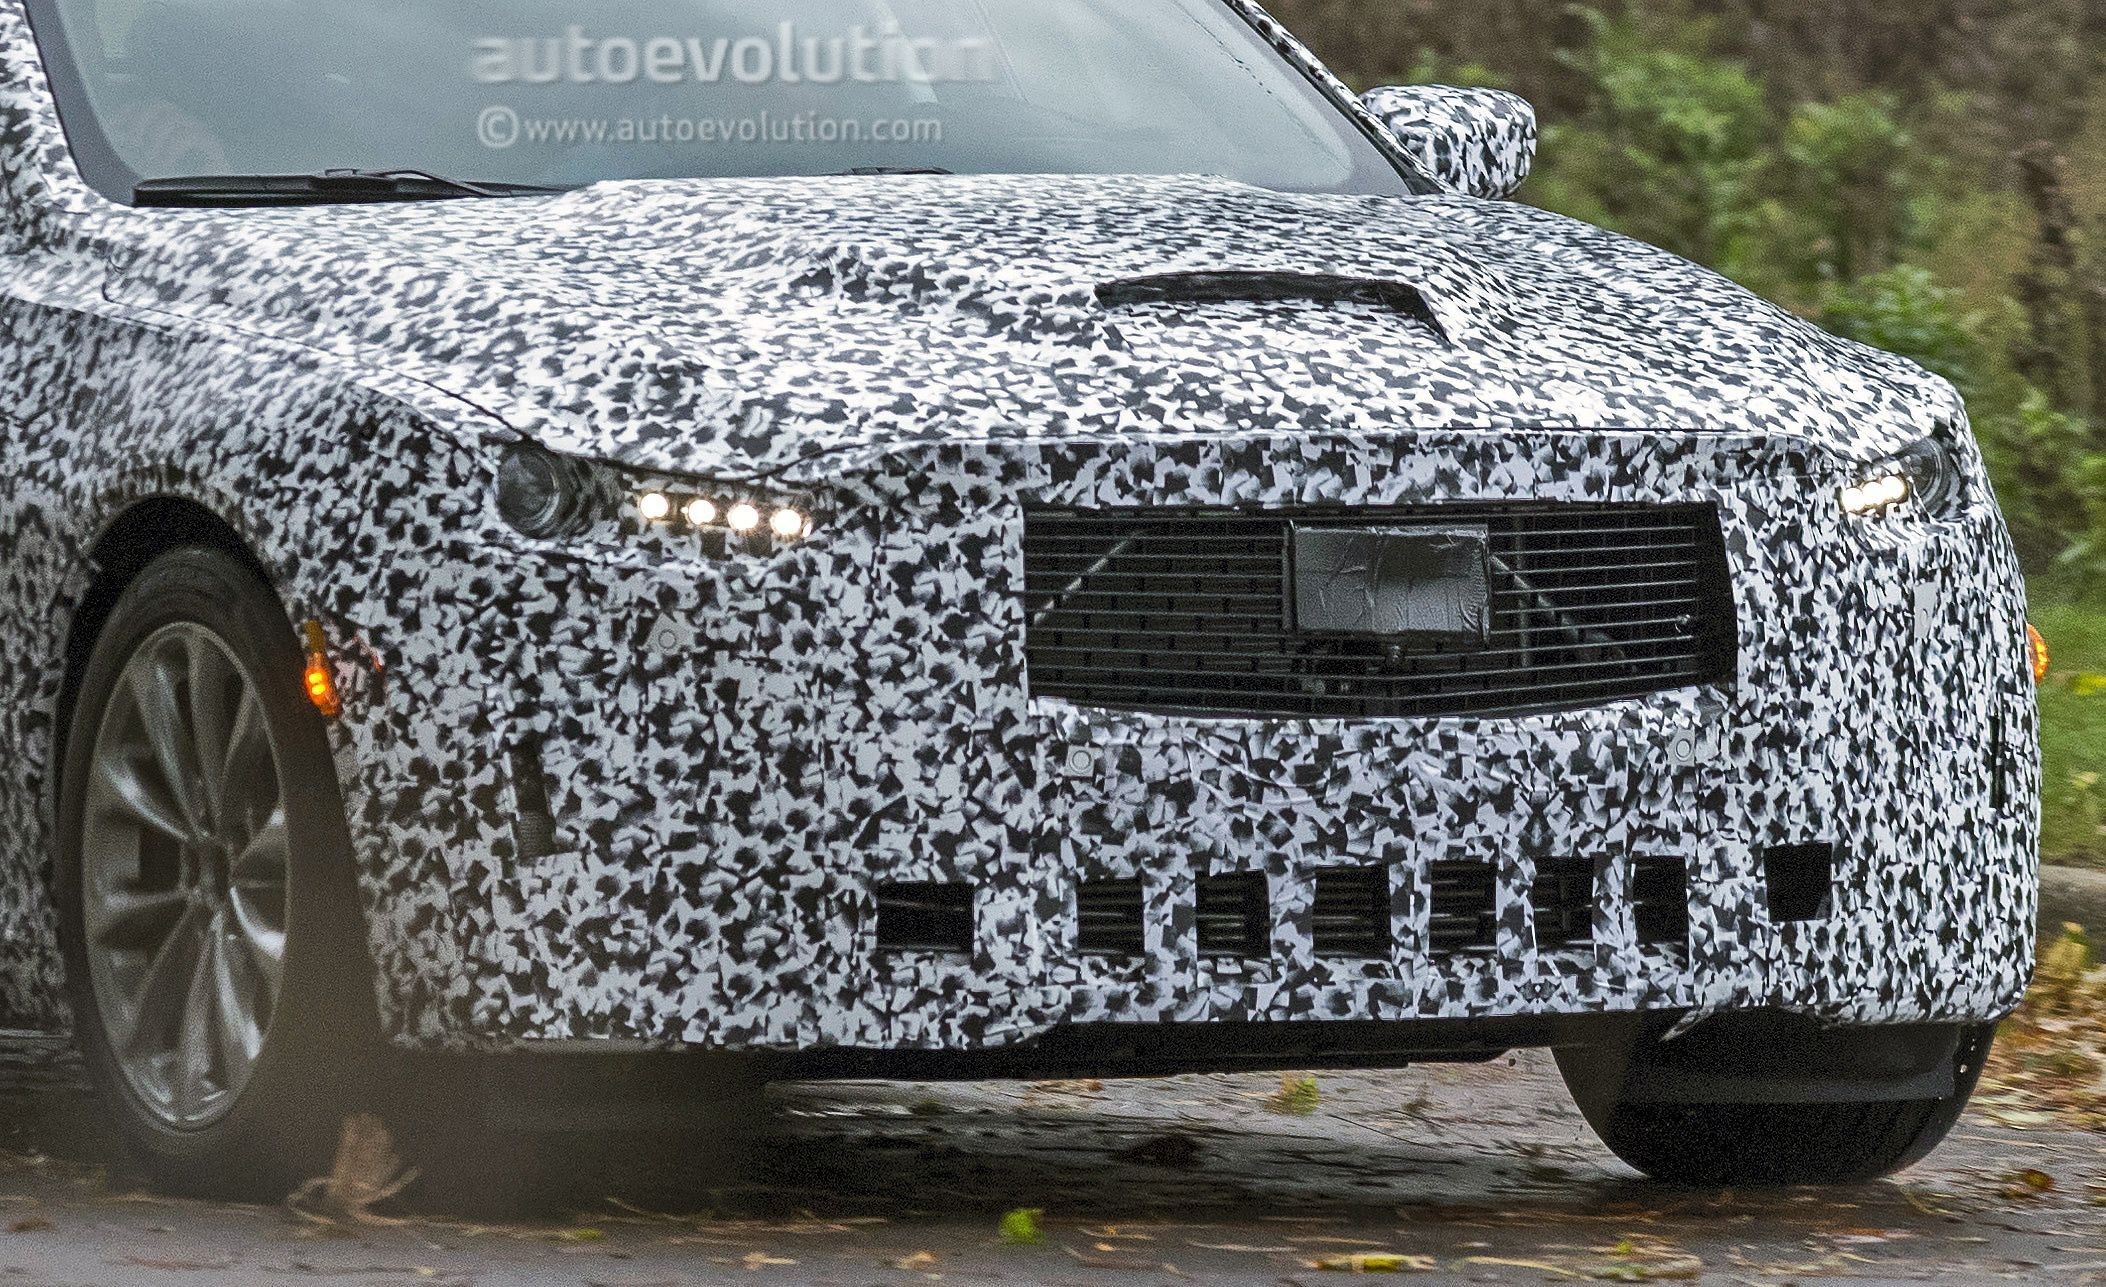 2020 Cadillac Ct5 Spied Will Replace The Cts Autoevolution